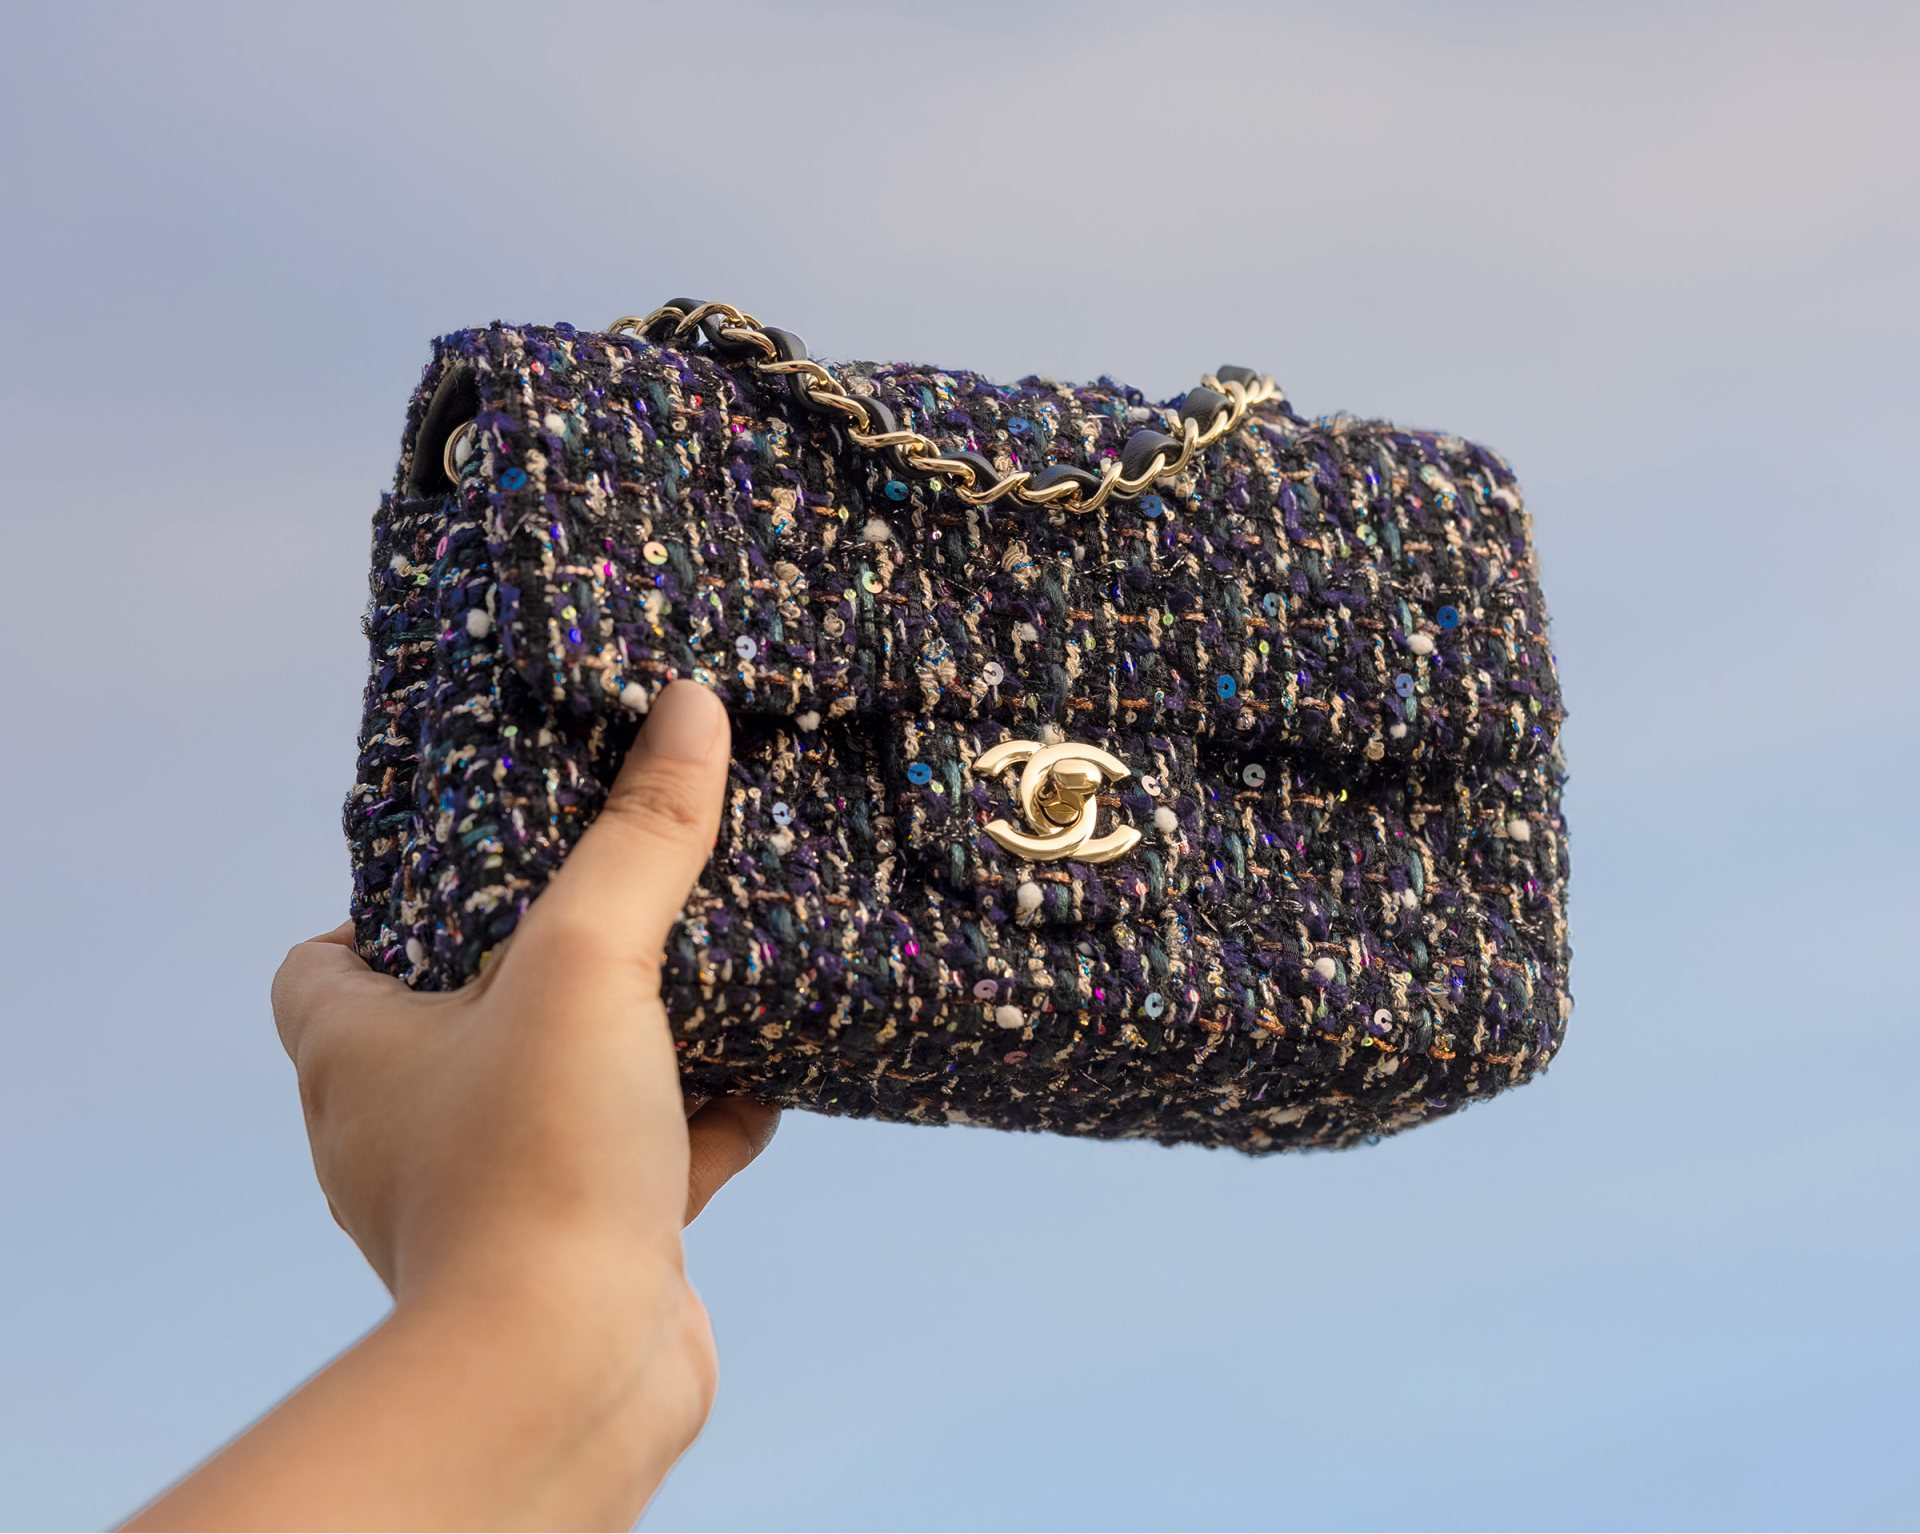 lifestyle image of Chanel tweed flap bag being held up in the air